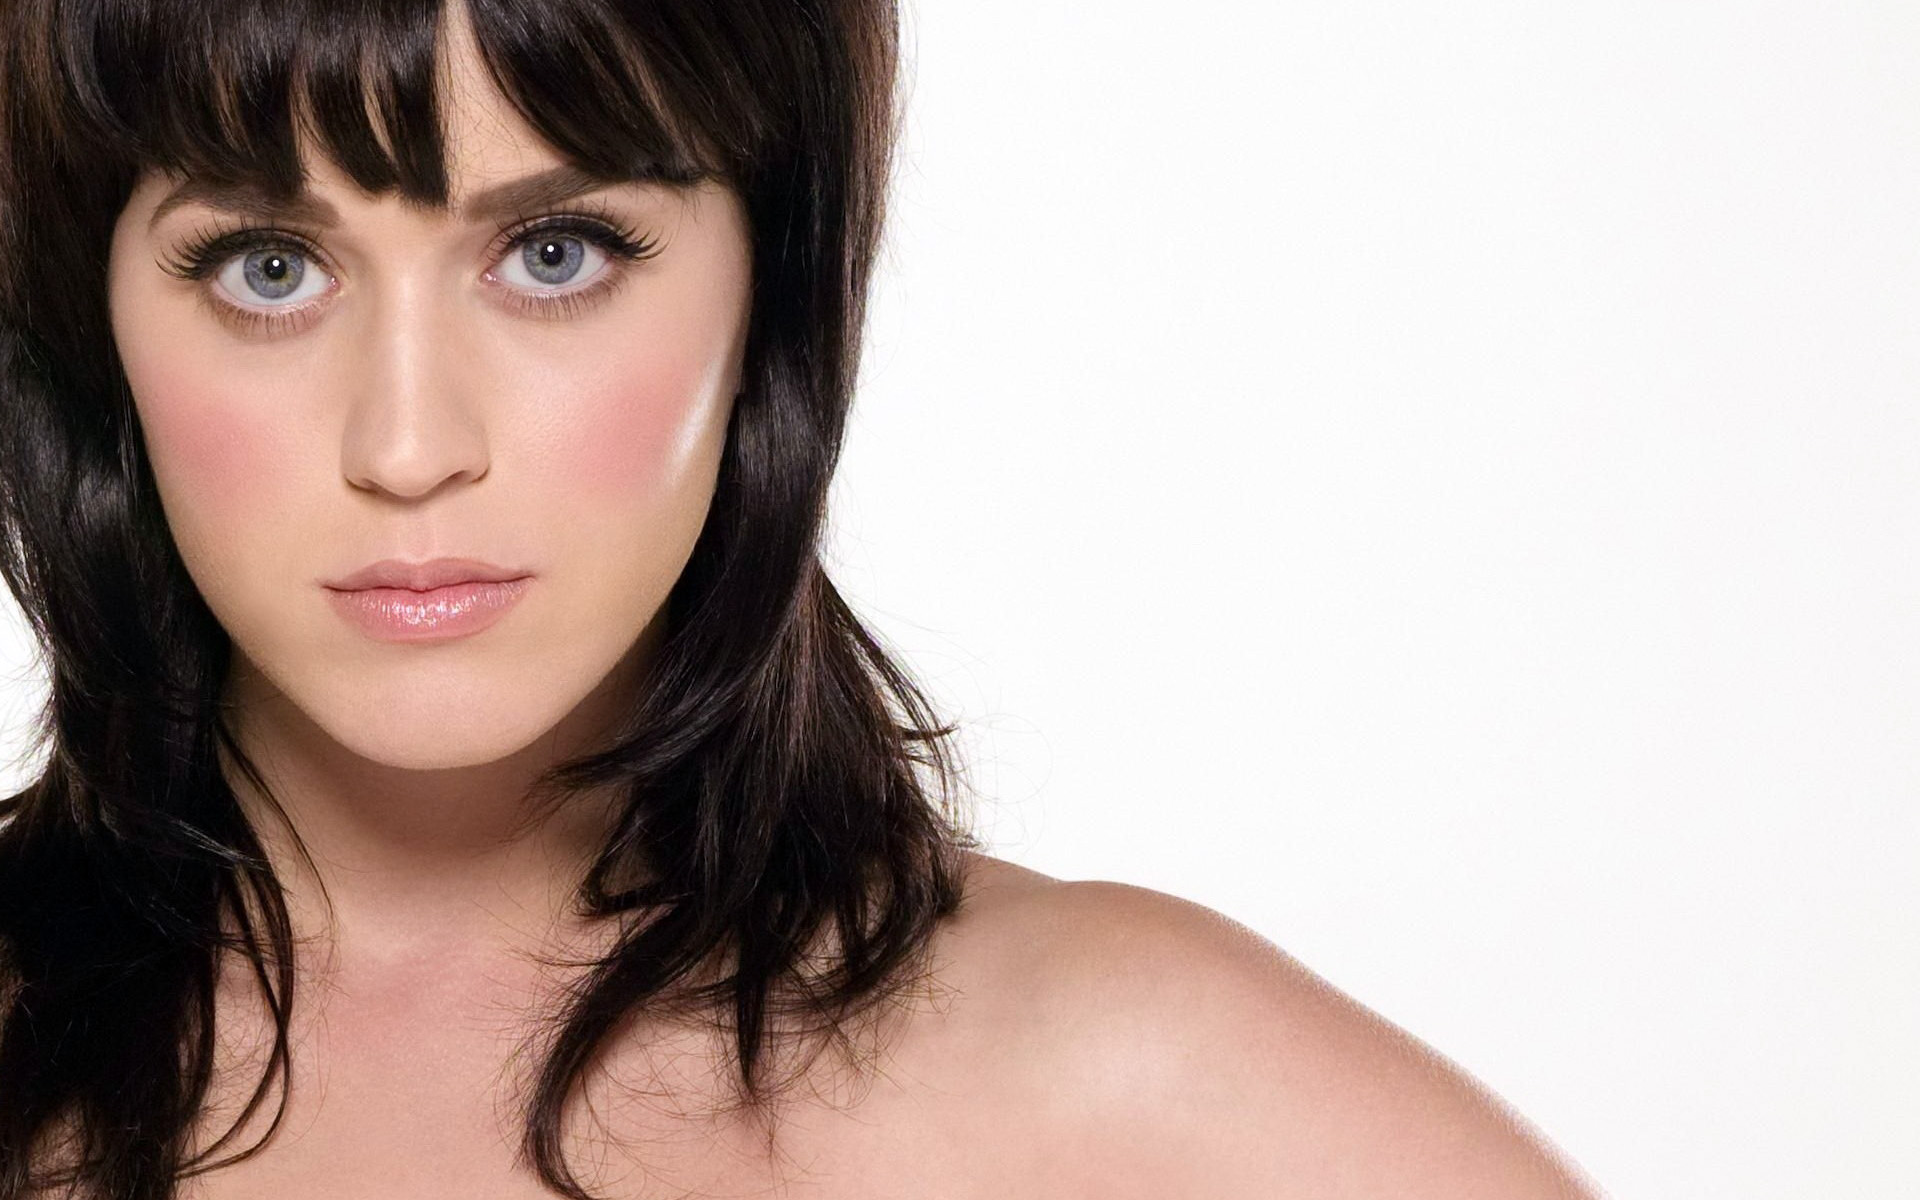 Katy Perry Celeb Exclusive HD Wallpapers 4935 1920x1200